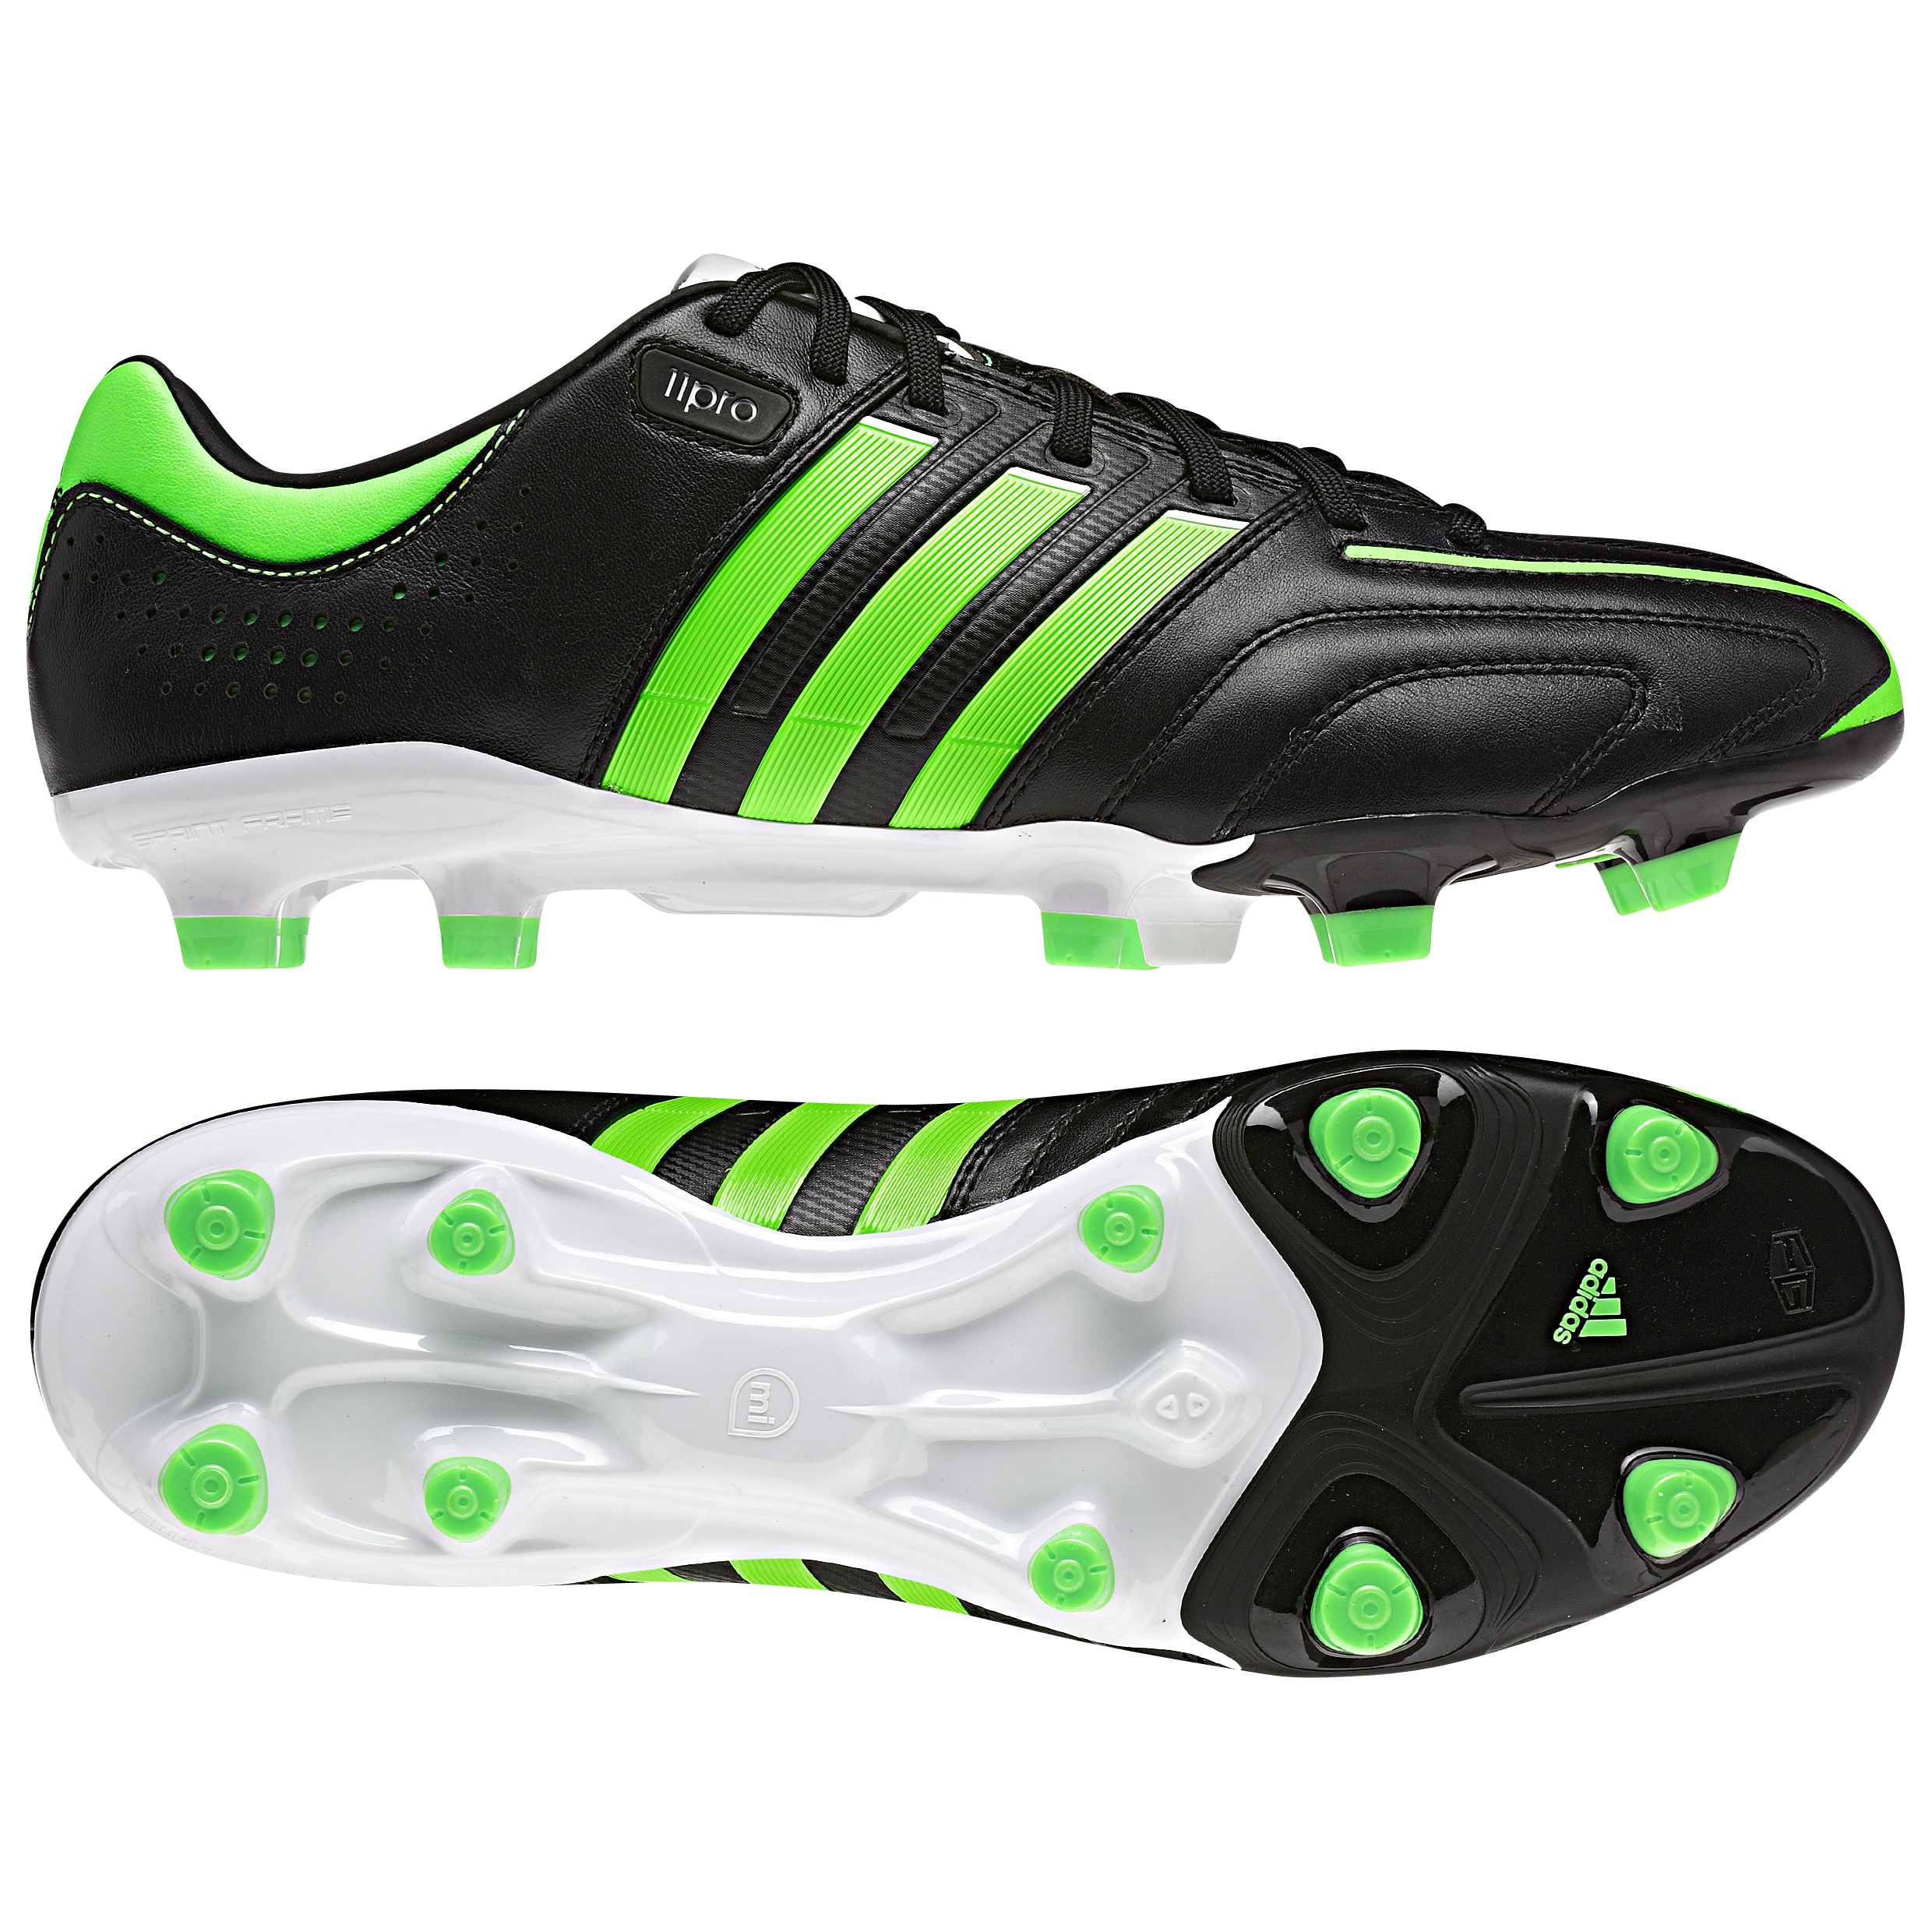 AdiPure 11Pro TRX FG Black/Green Zest/Running White